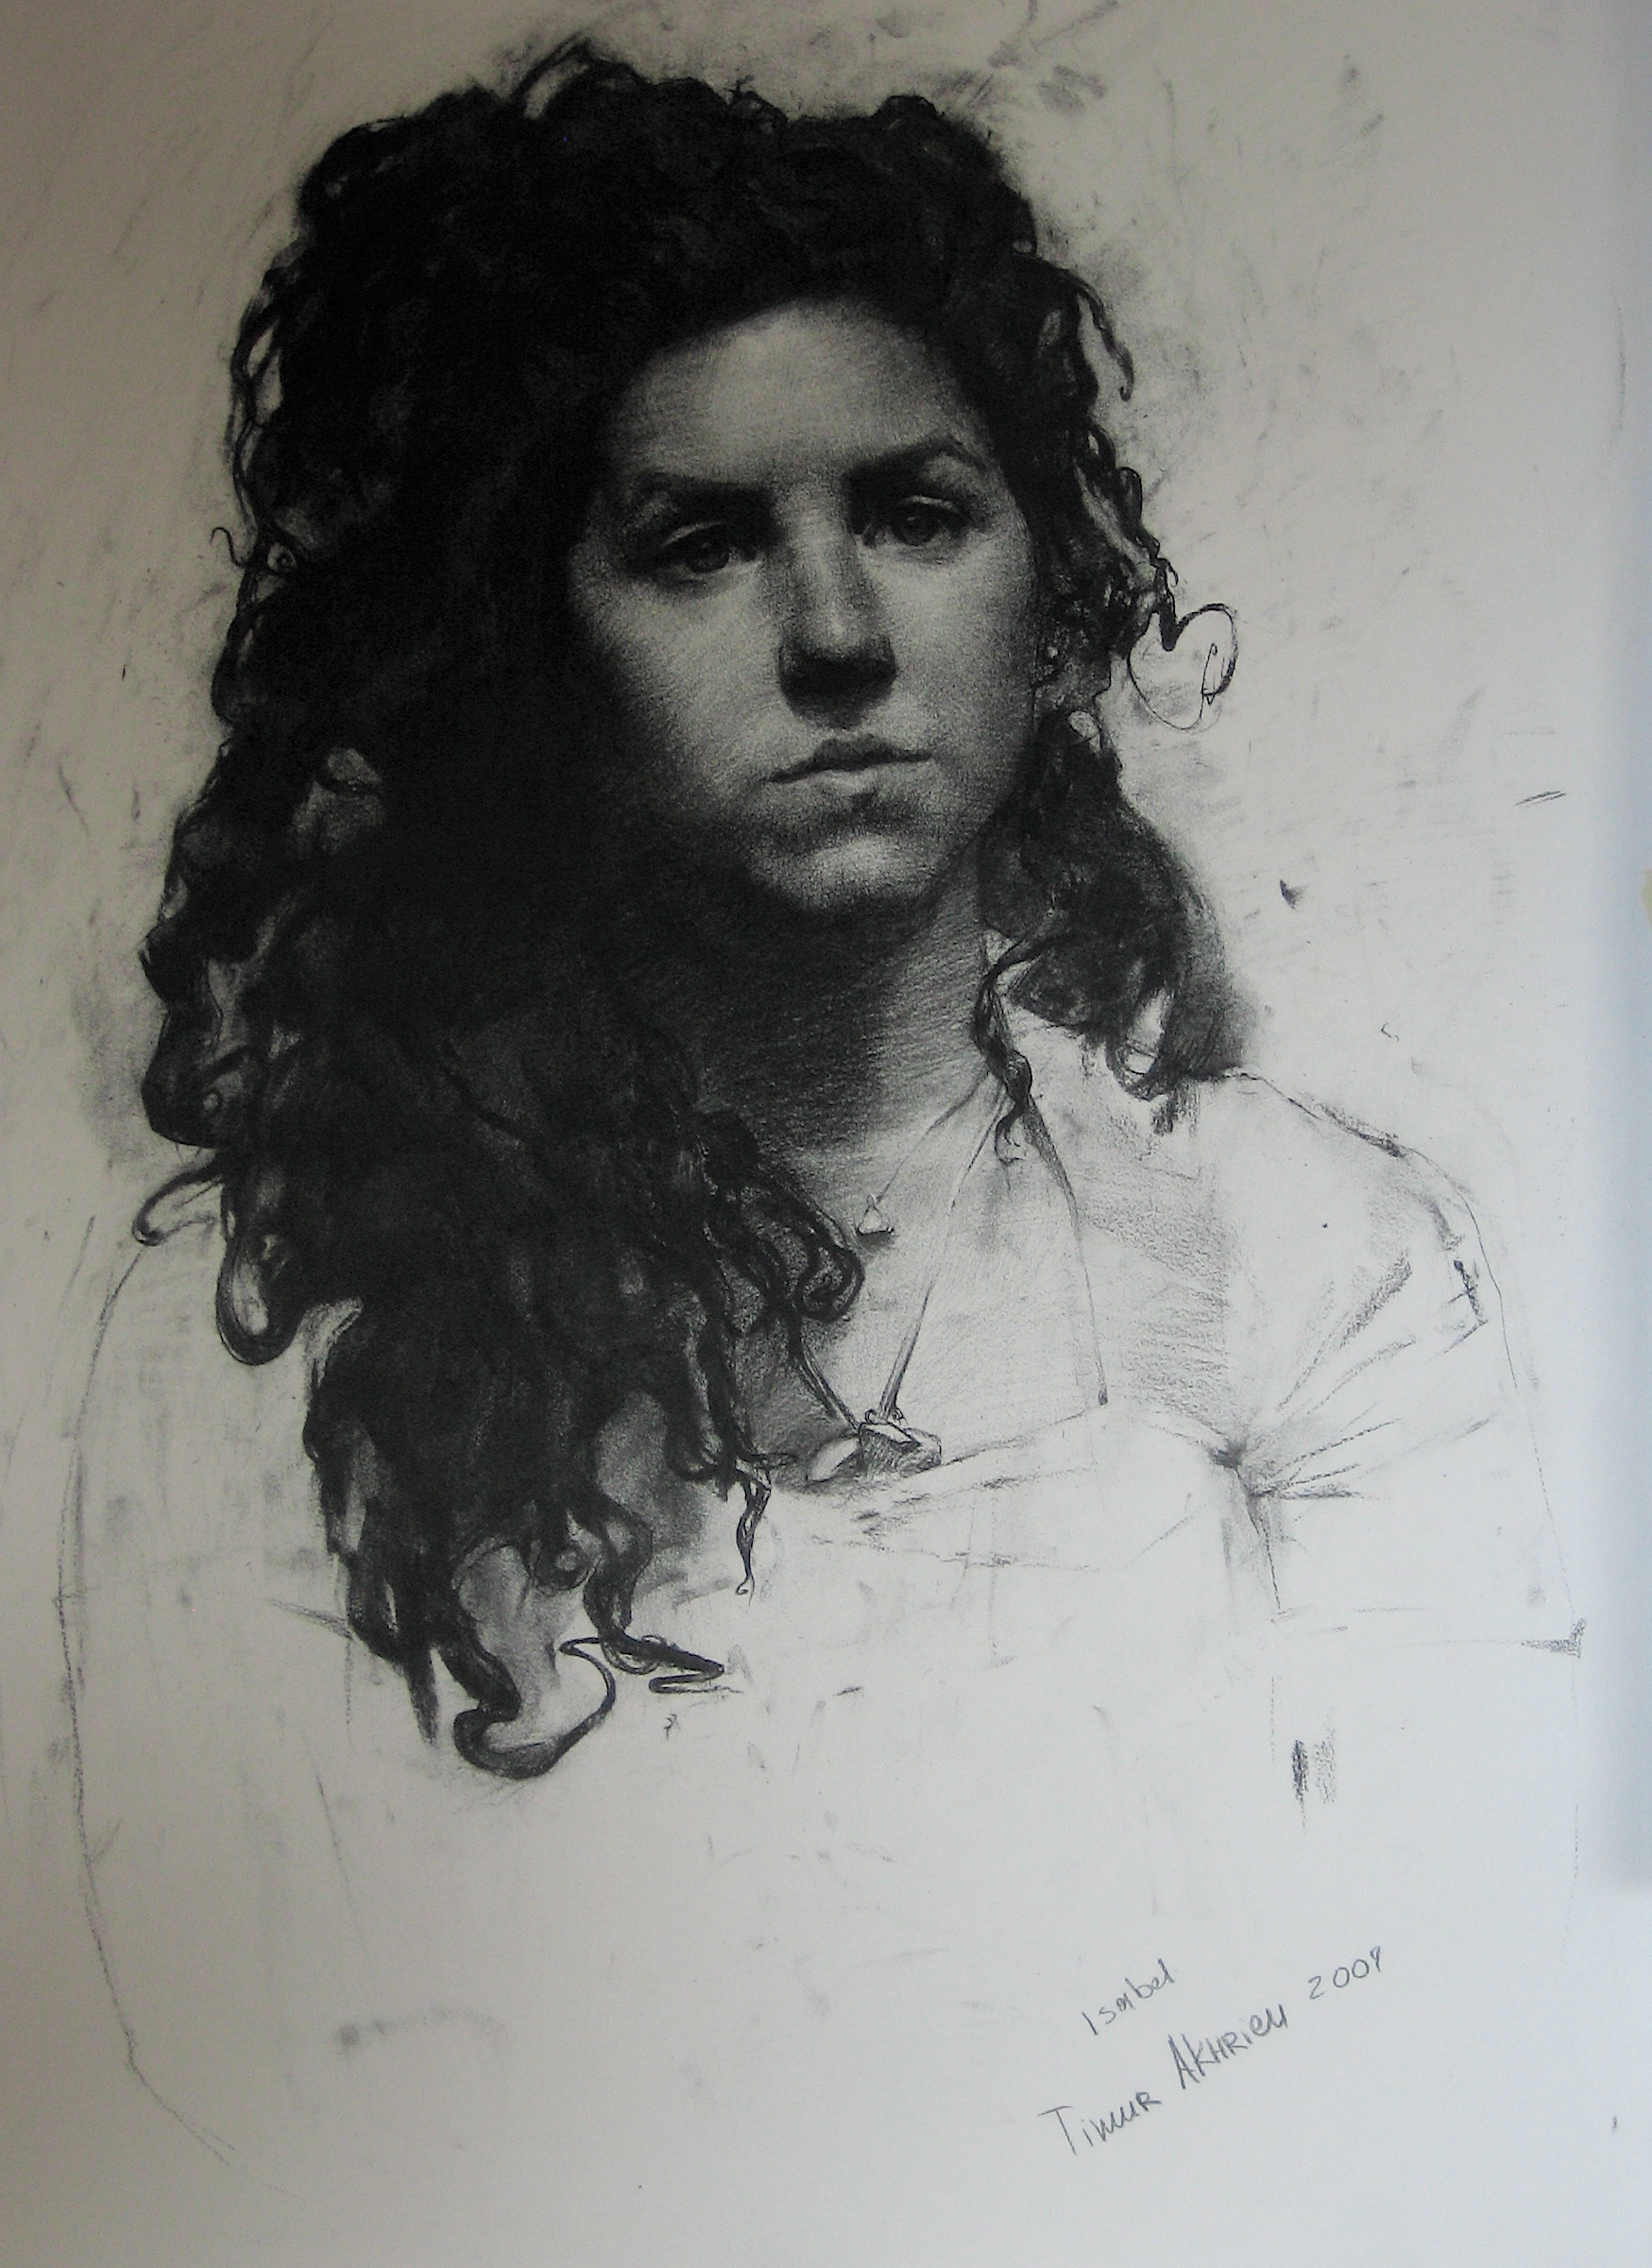 Timur Akhriev.   Title:Isabel  Charcoal on Paper. Private Collection. 2007.